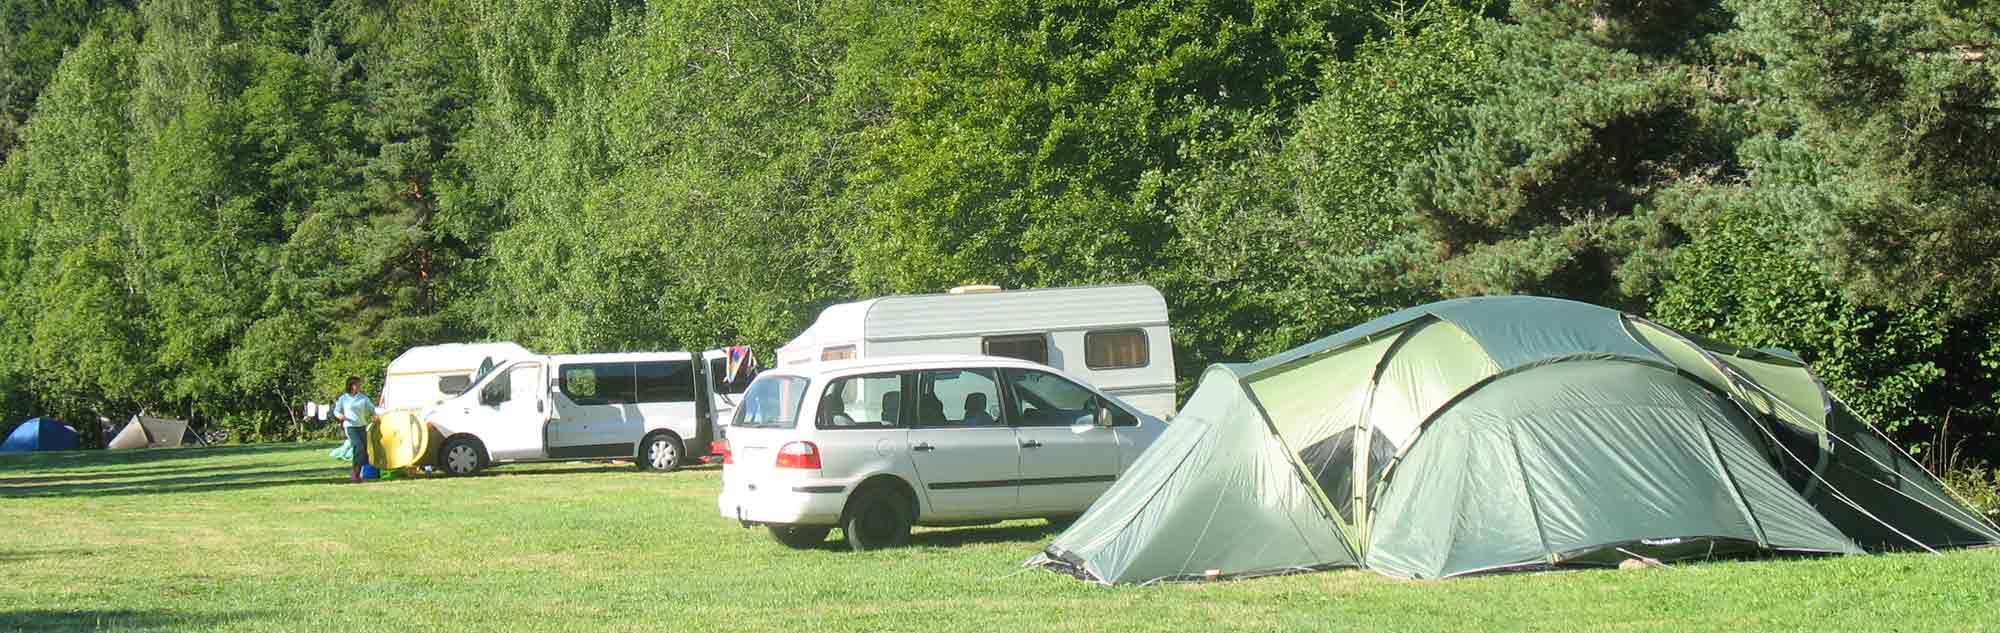 emplacement camping langogne lozere